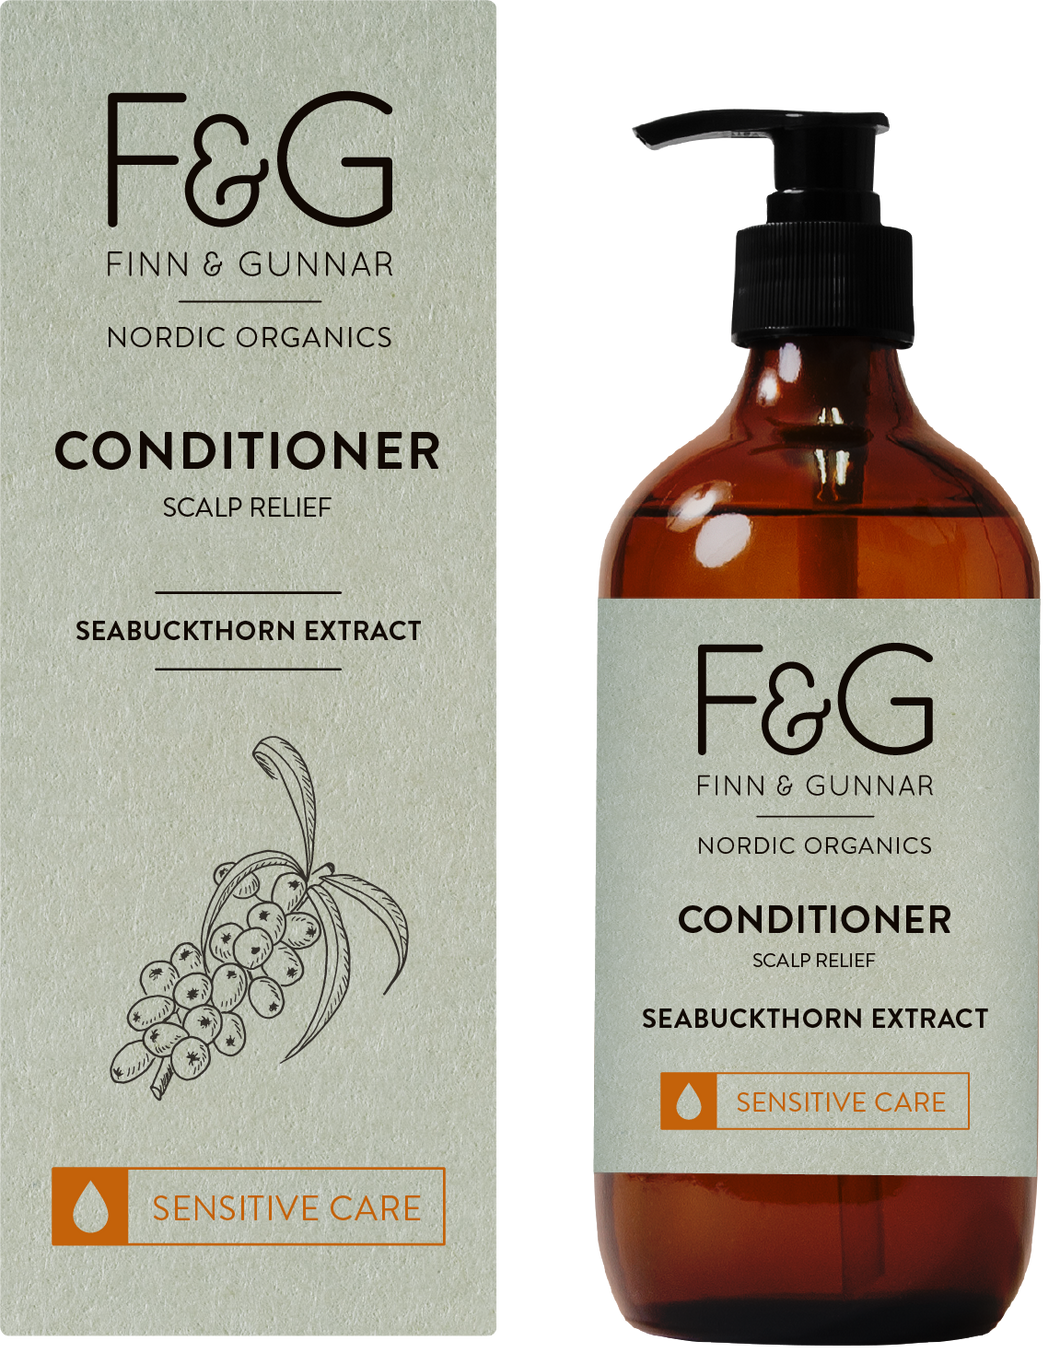 F&G Nordic Organics Conditioner Scalp Relief 200 ml